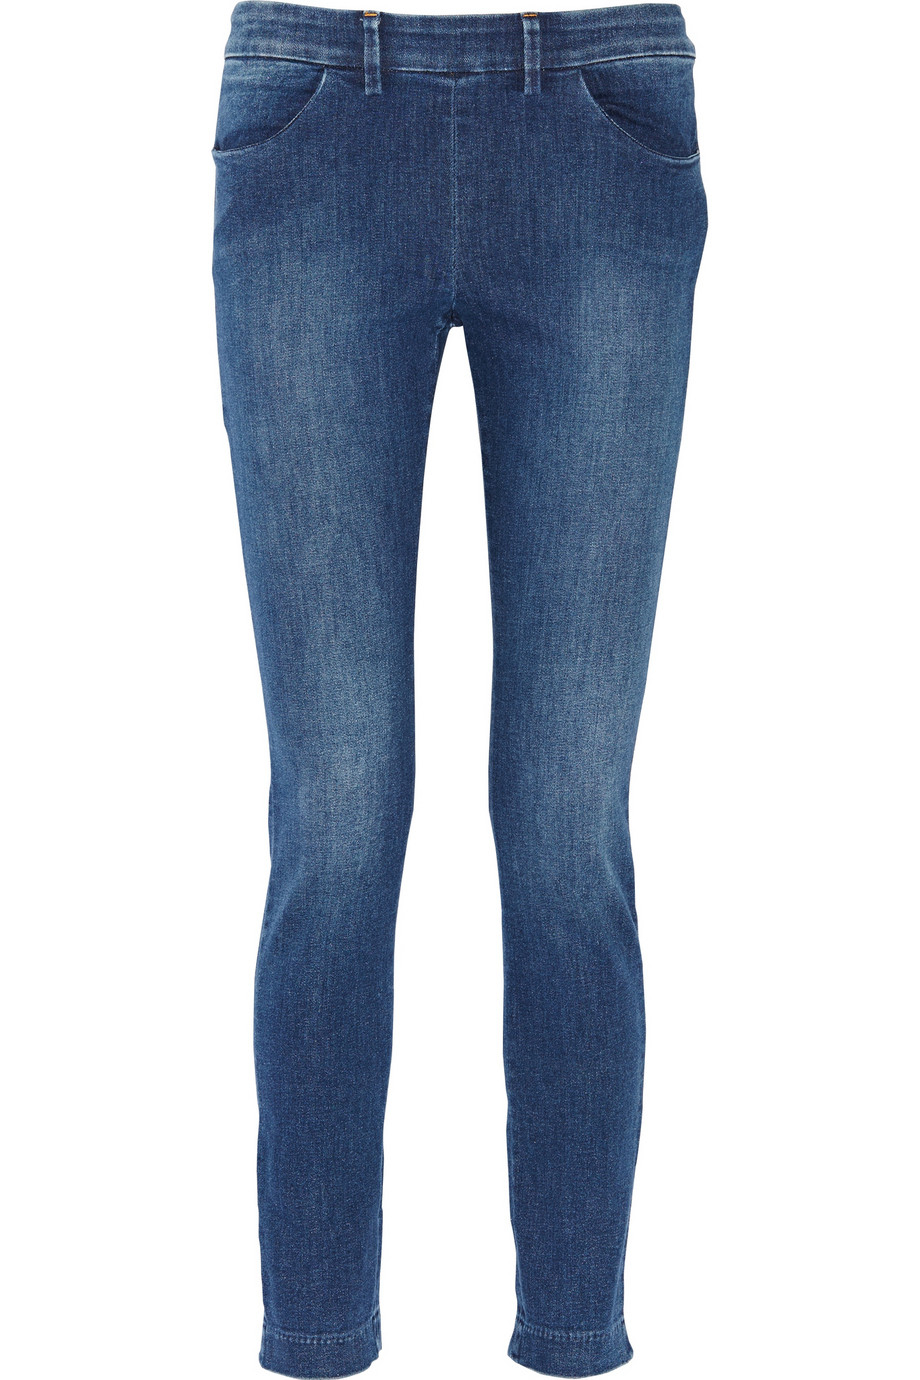 acne studios skinny high rise jeans in blue mid denim lyst. Black Bedroom Furniture Sets. Home Design Ideas